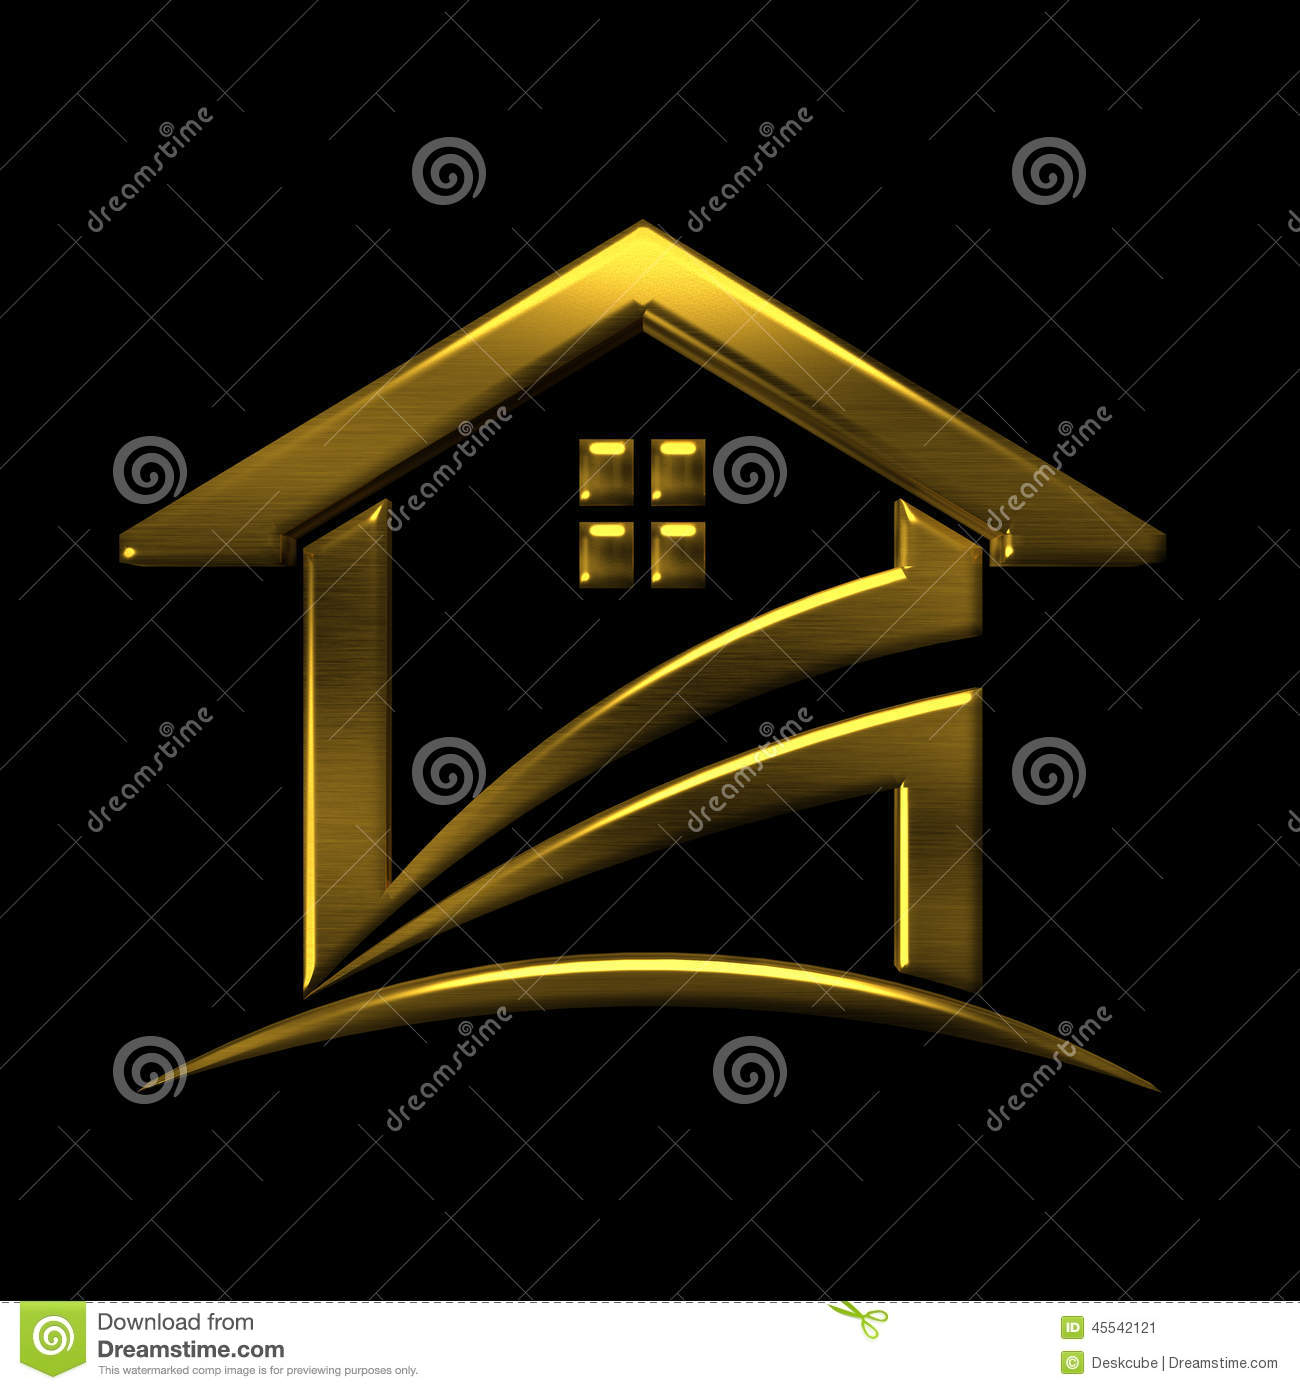 Golden House Logo. VIP Design Element Stock Illustration ...